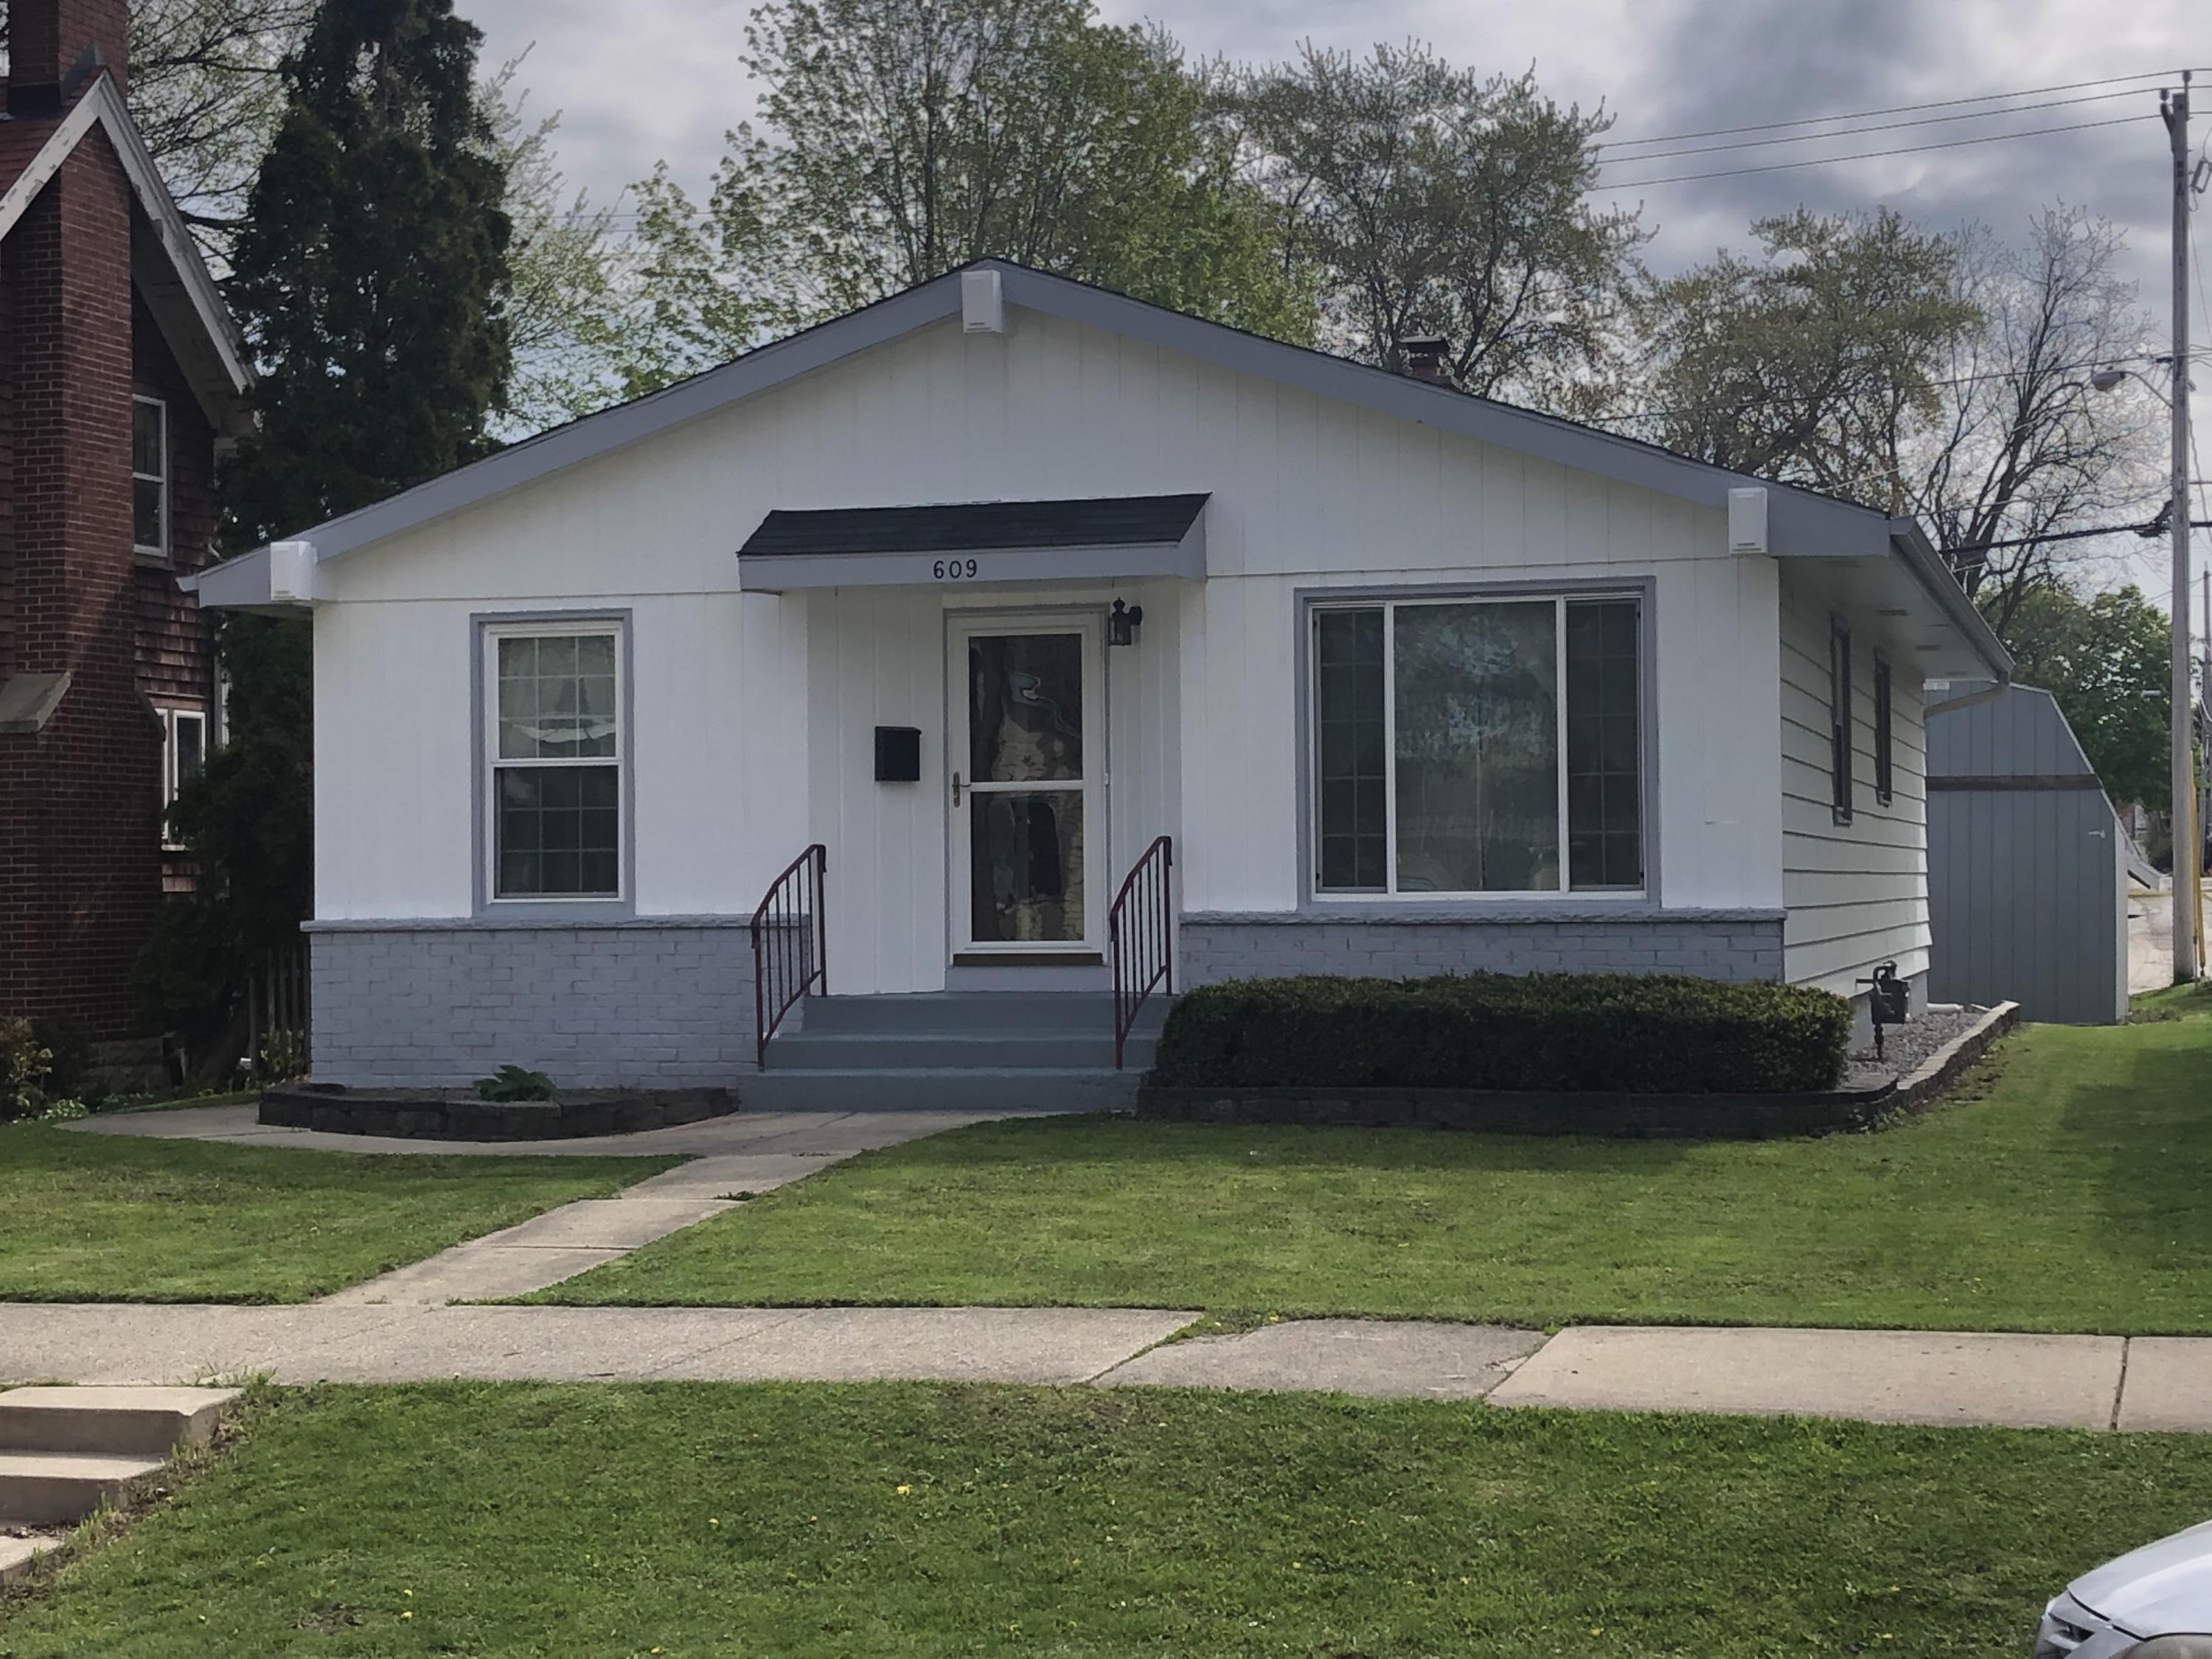 609 Grand Ave., Waukesha, Wisconsin 53186, 3 Bedrooms Bedrooms, ,2 BathroomsBathrooms,Single-Family,For Sale,Grand Ave.,1689497